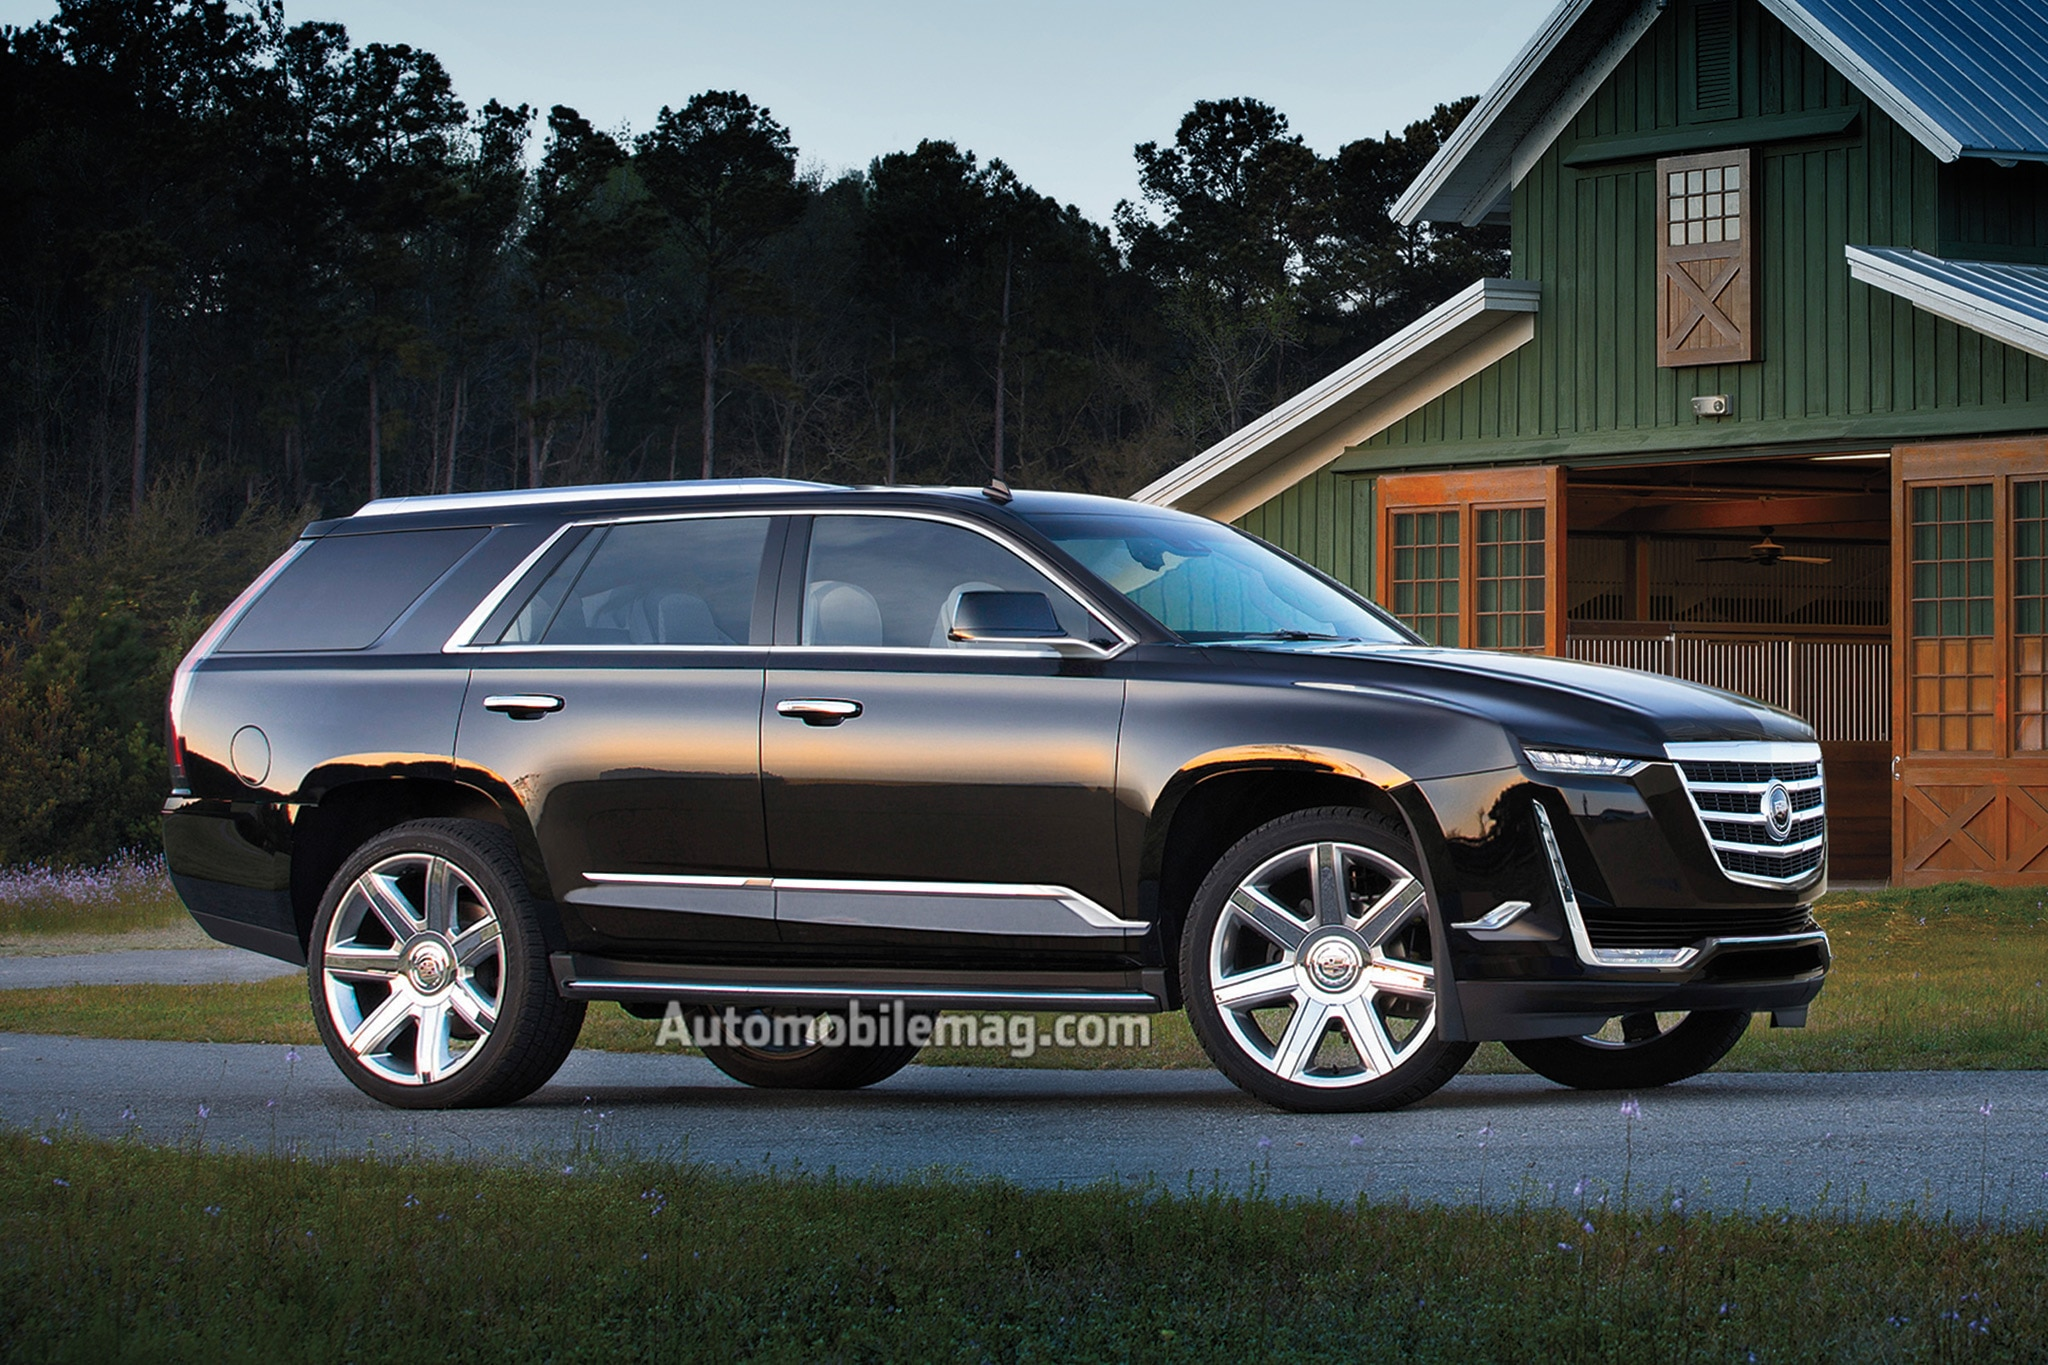 82 New 2019 Cadillac Escalade Vsport Photos